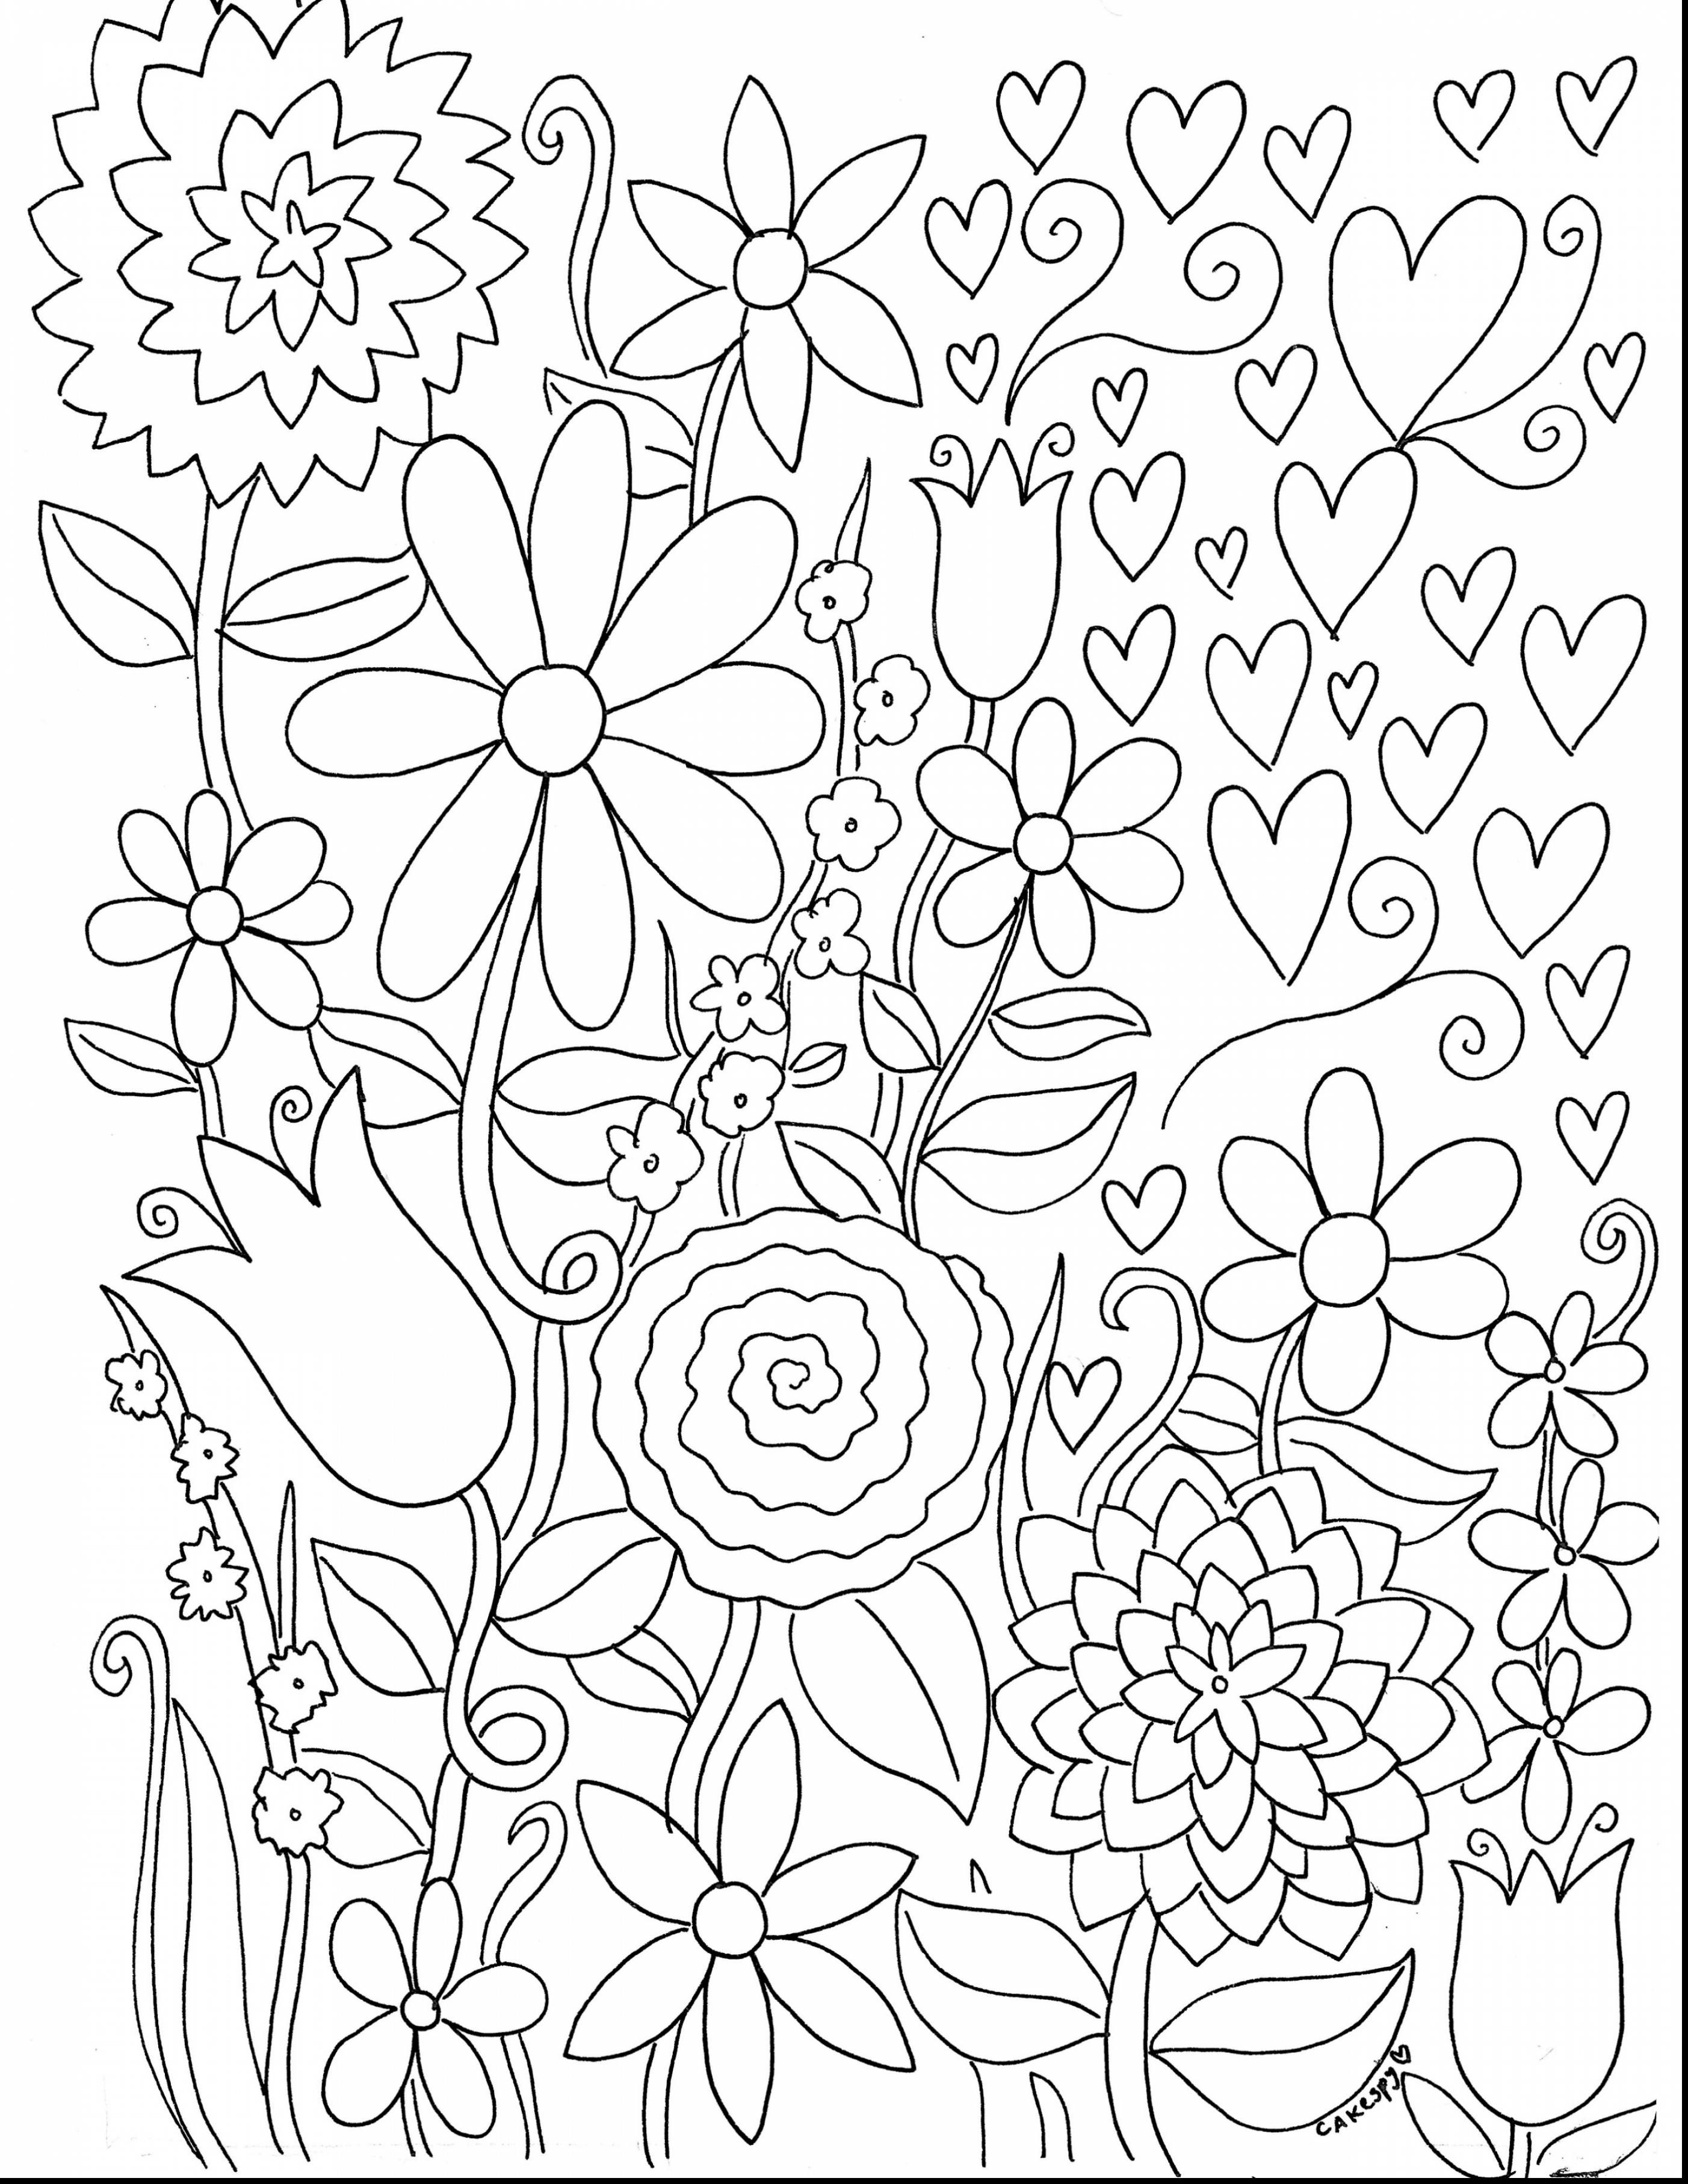 coloring page creator create your own coloring pages coloring home creator coloring page